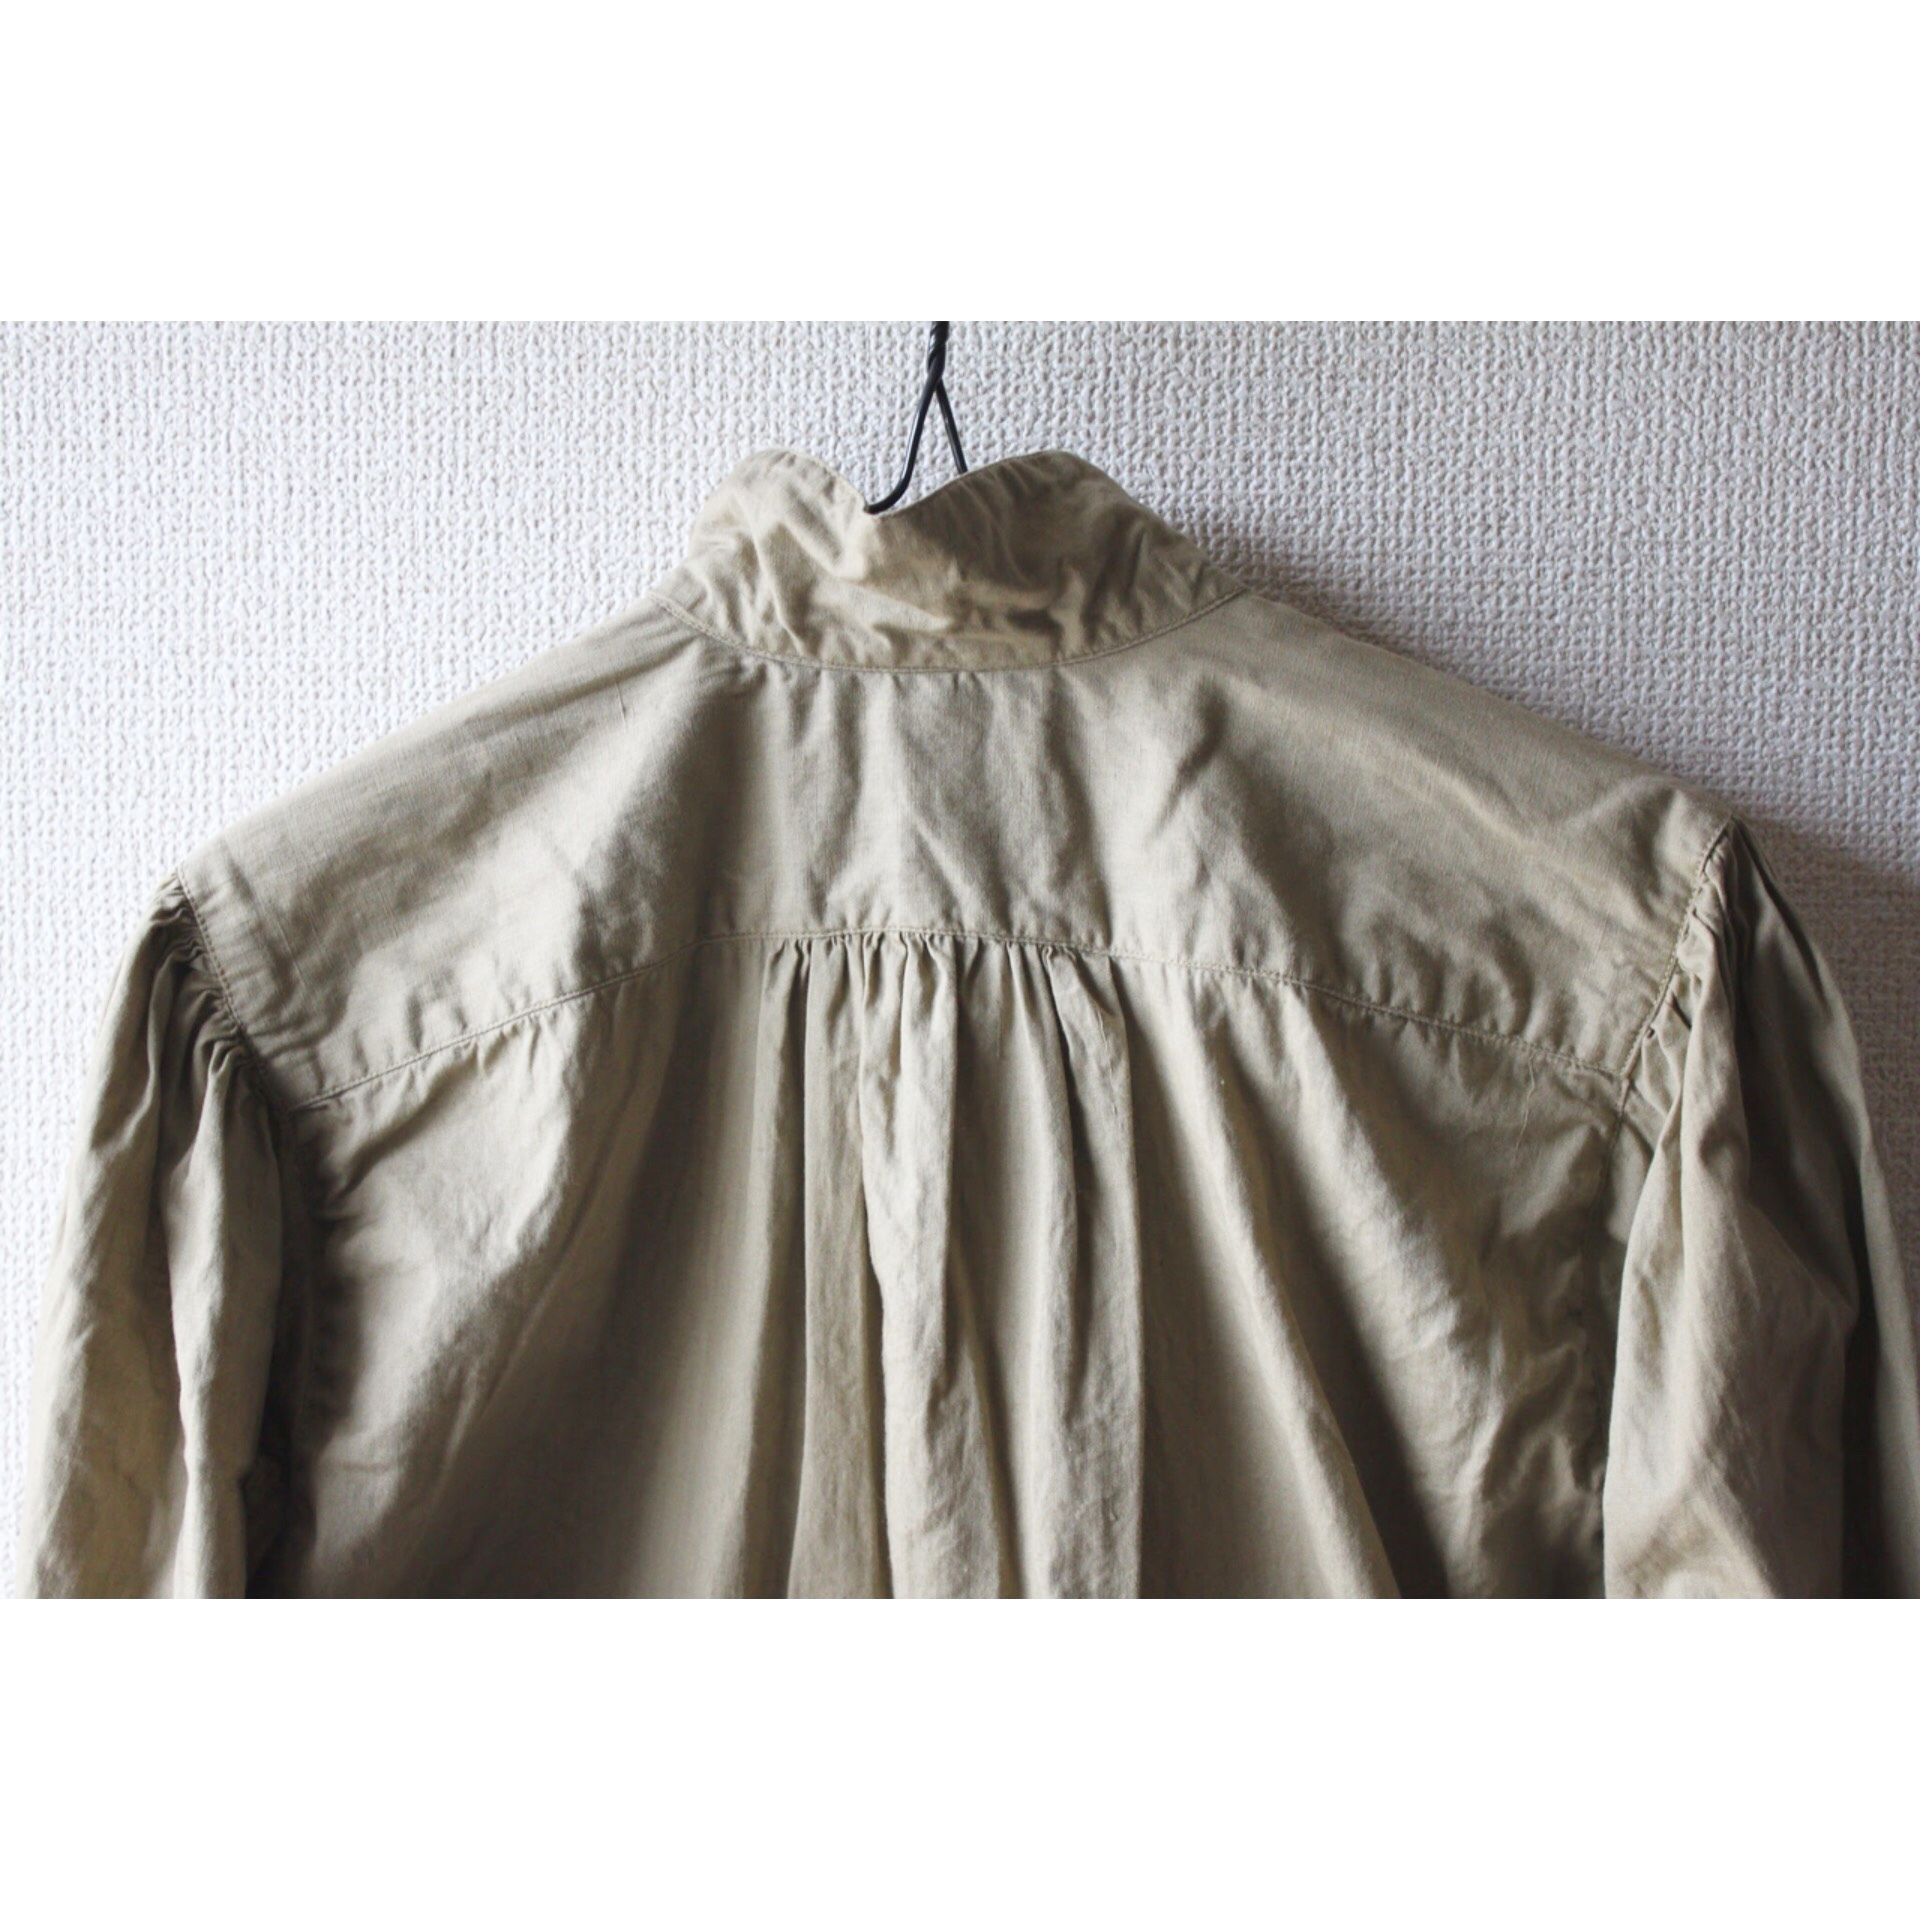 Vintage shawl collar shirt